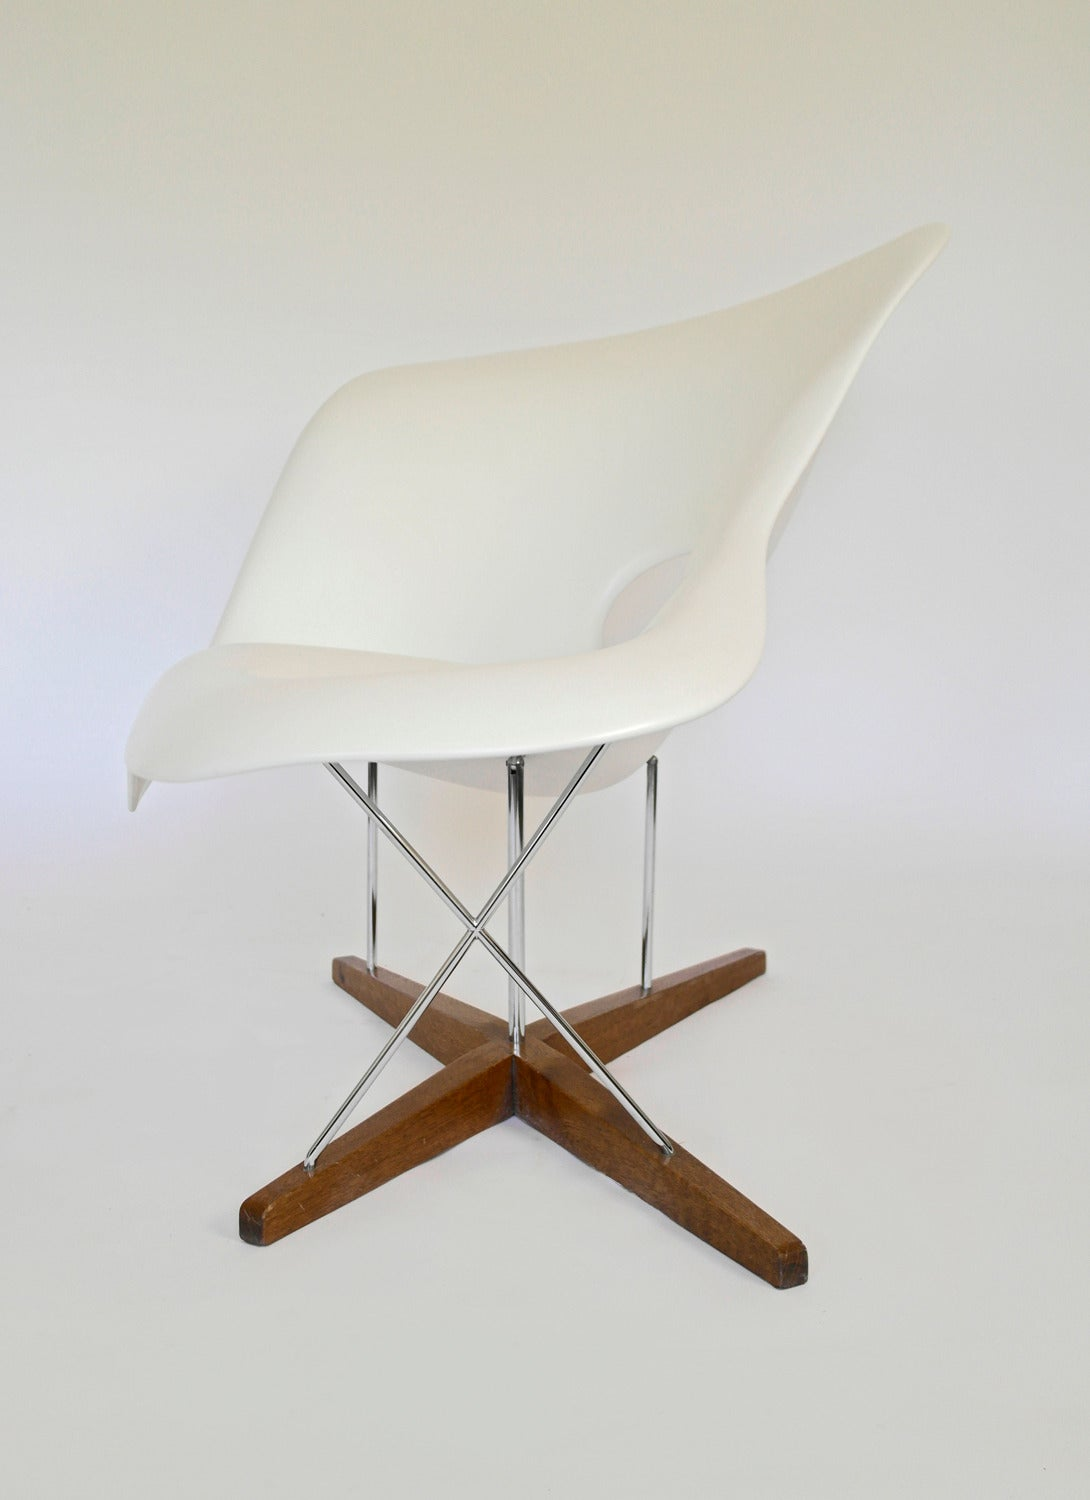 Chaise style charles eames 28 images charles eames for Reproduction chaise eames